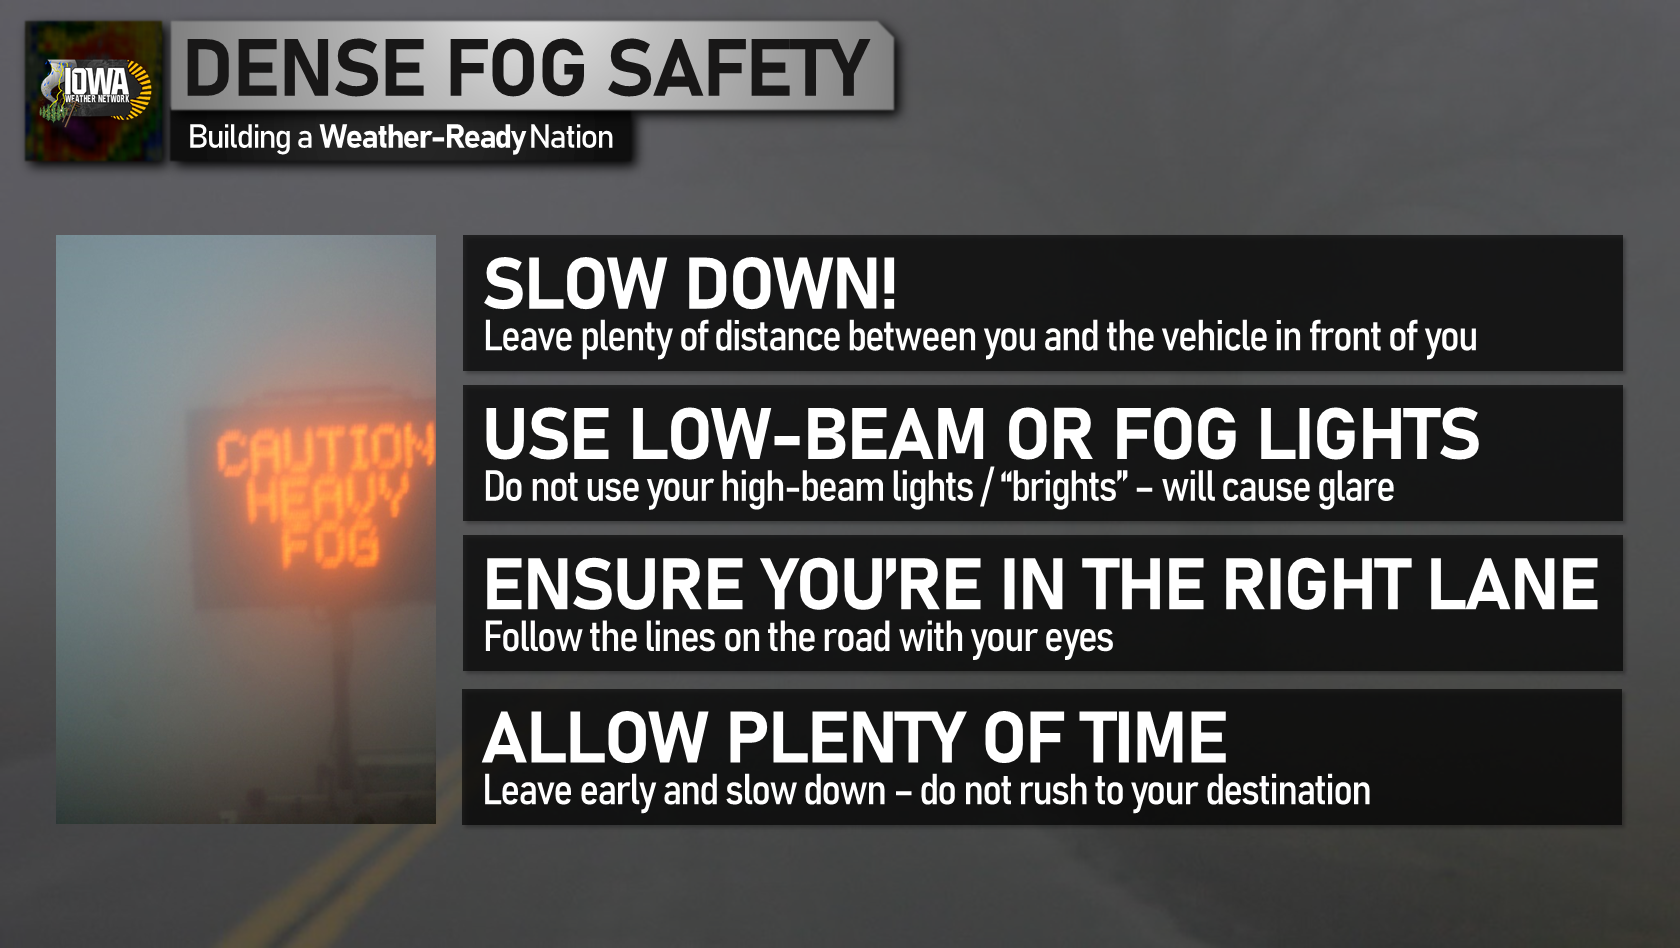 Dense fog safety tips